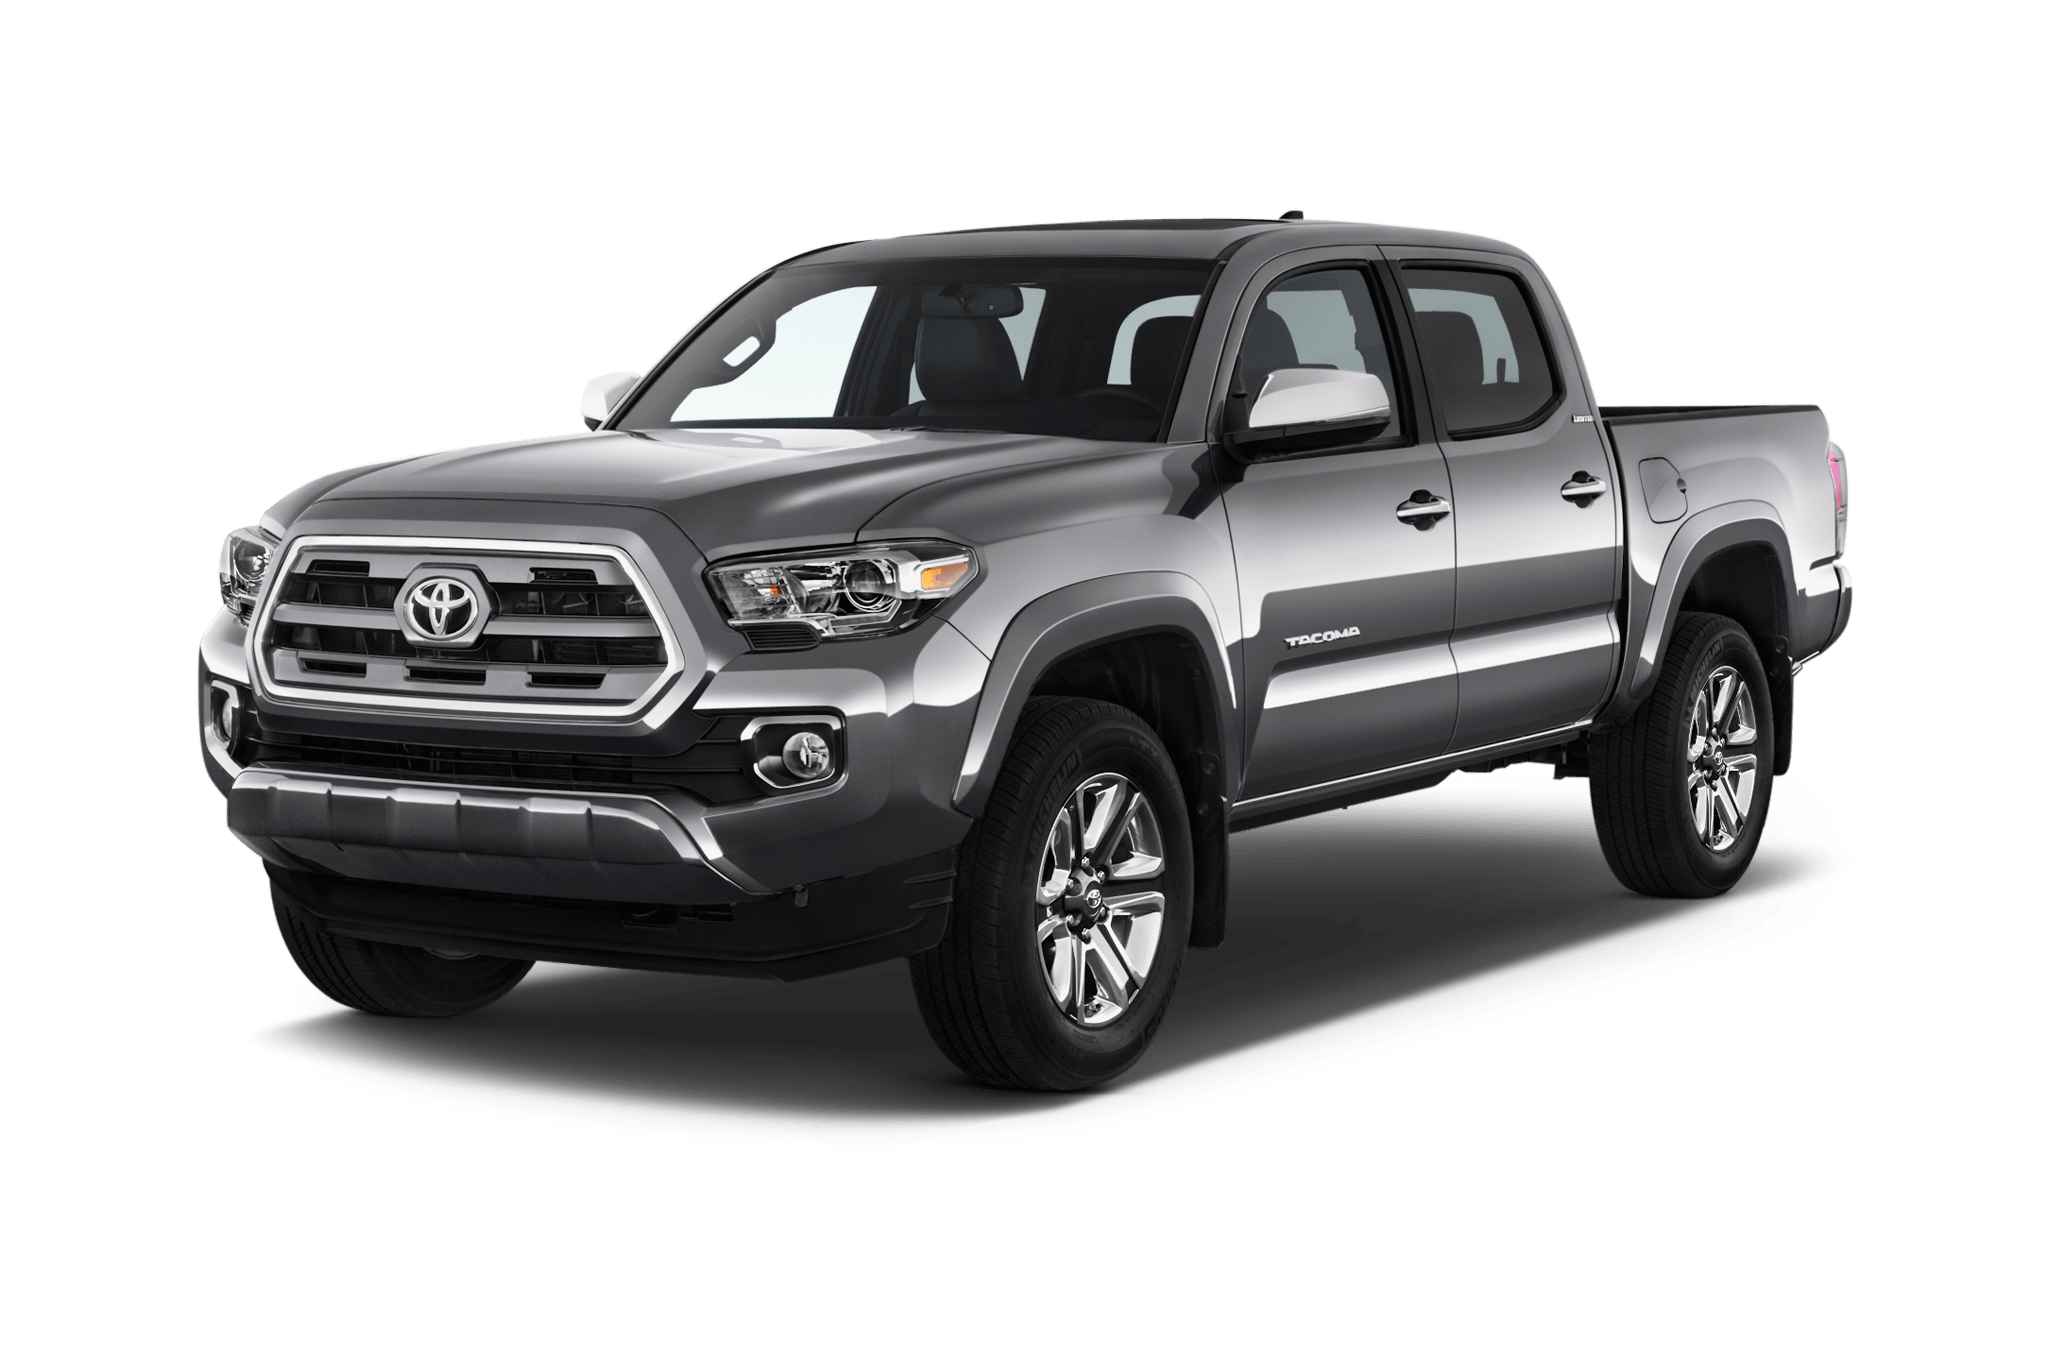 Length Of A Double Bed 2016 Toyota Tacoma Sr Double Cab 4x4 V6 Auto Short Bed